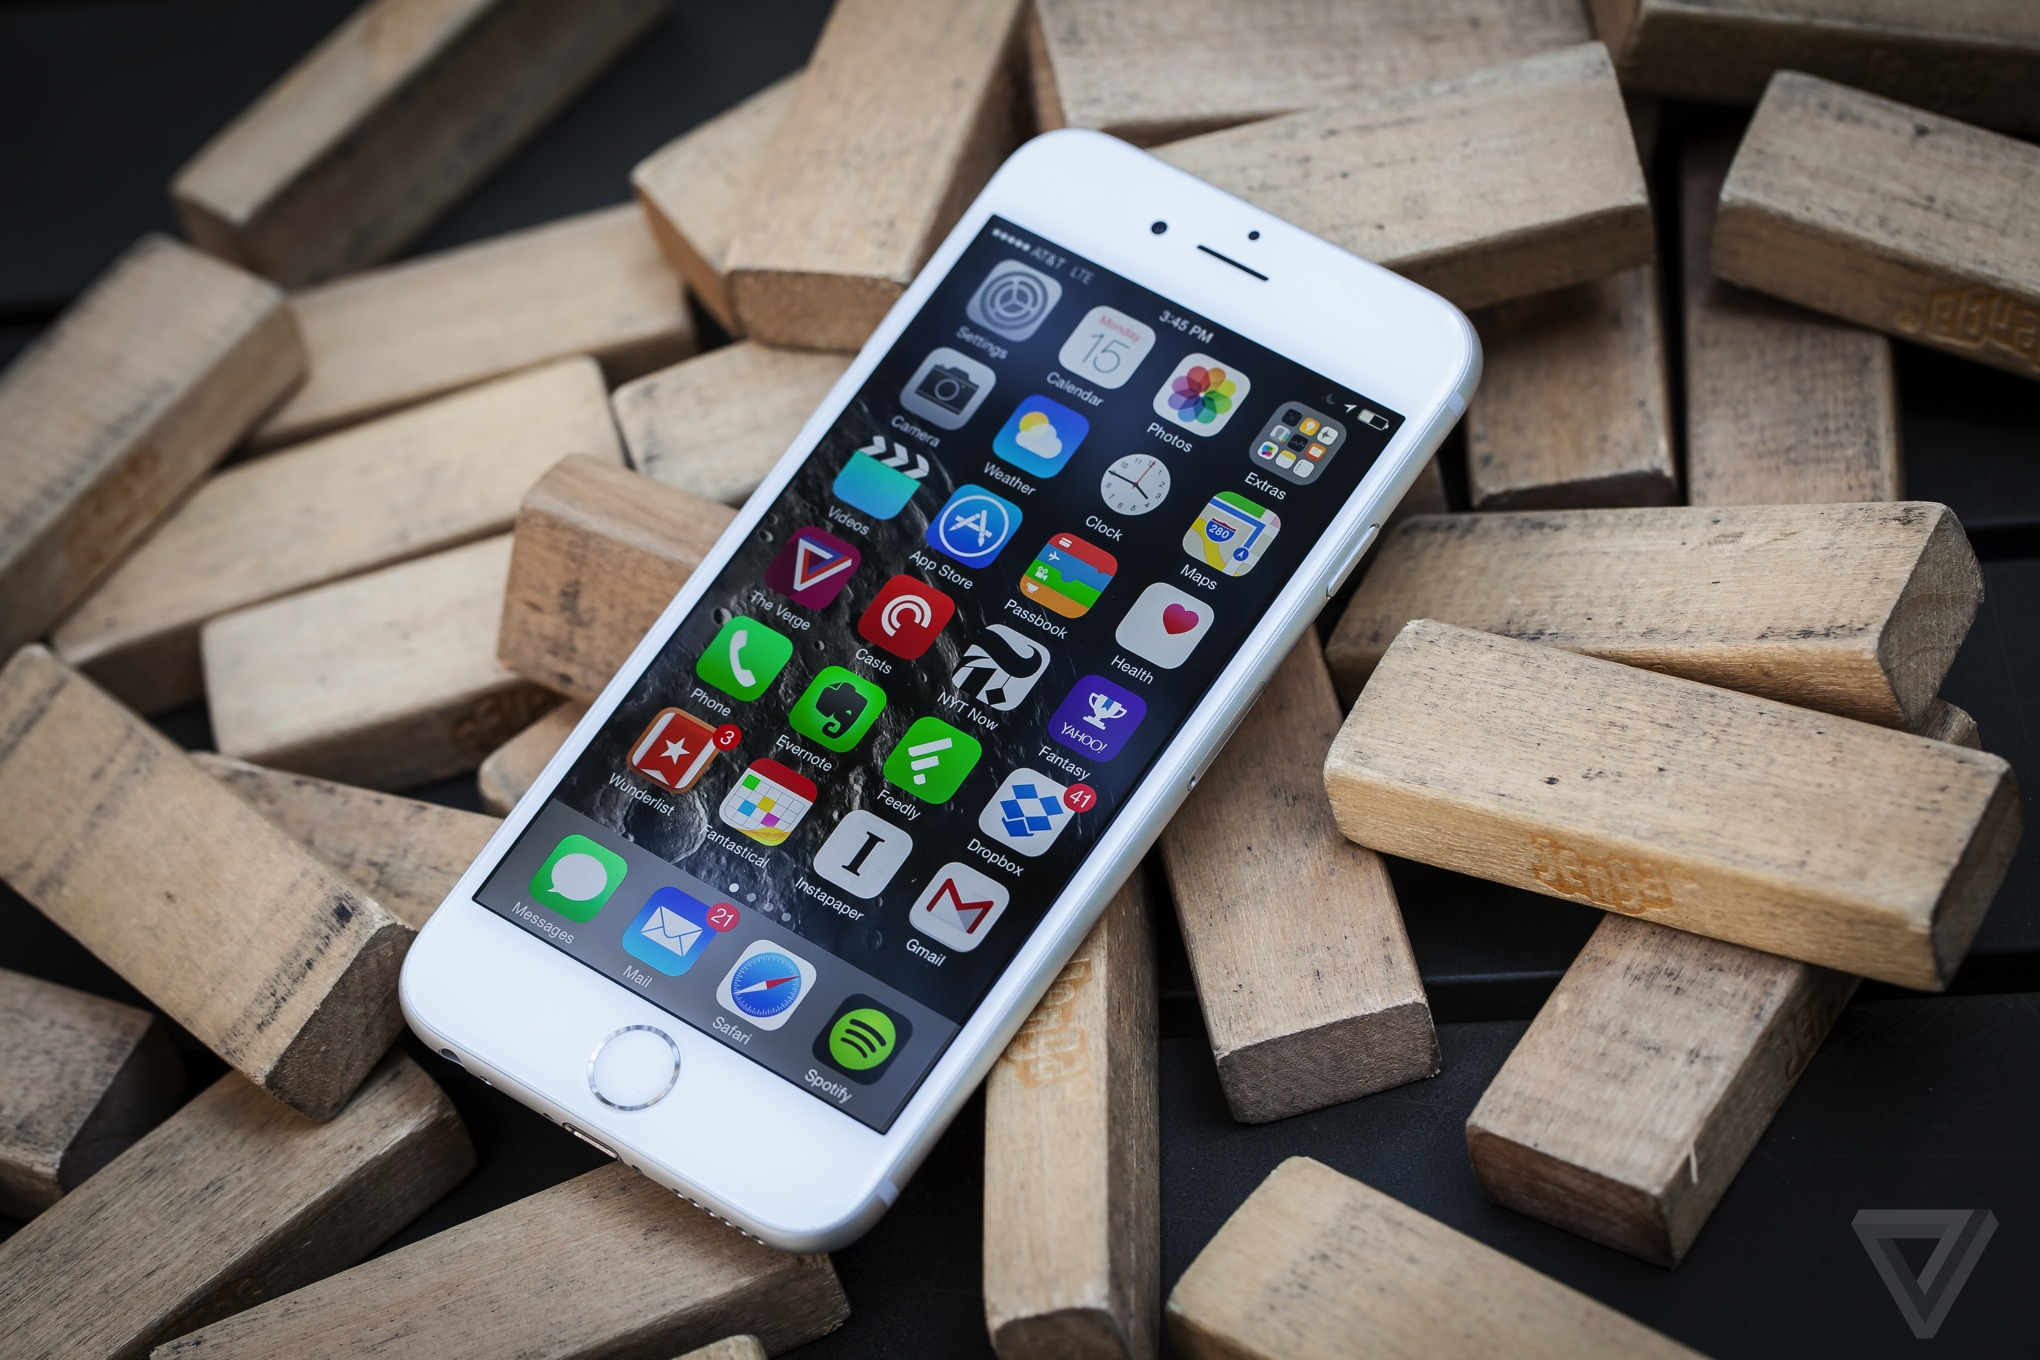 how to delete apps on iphone 6 s